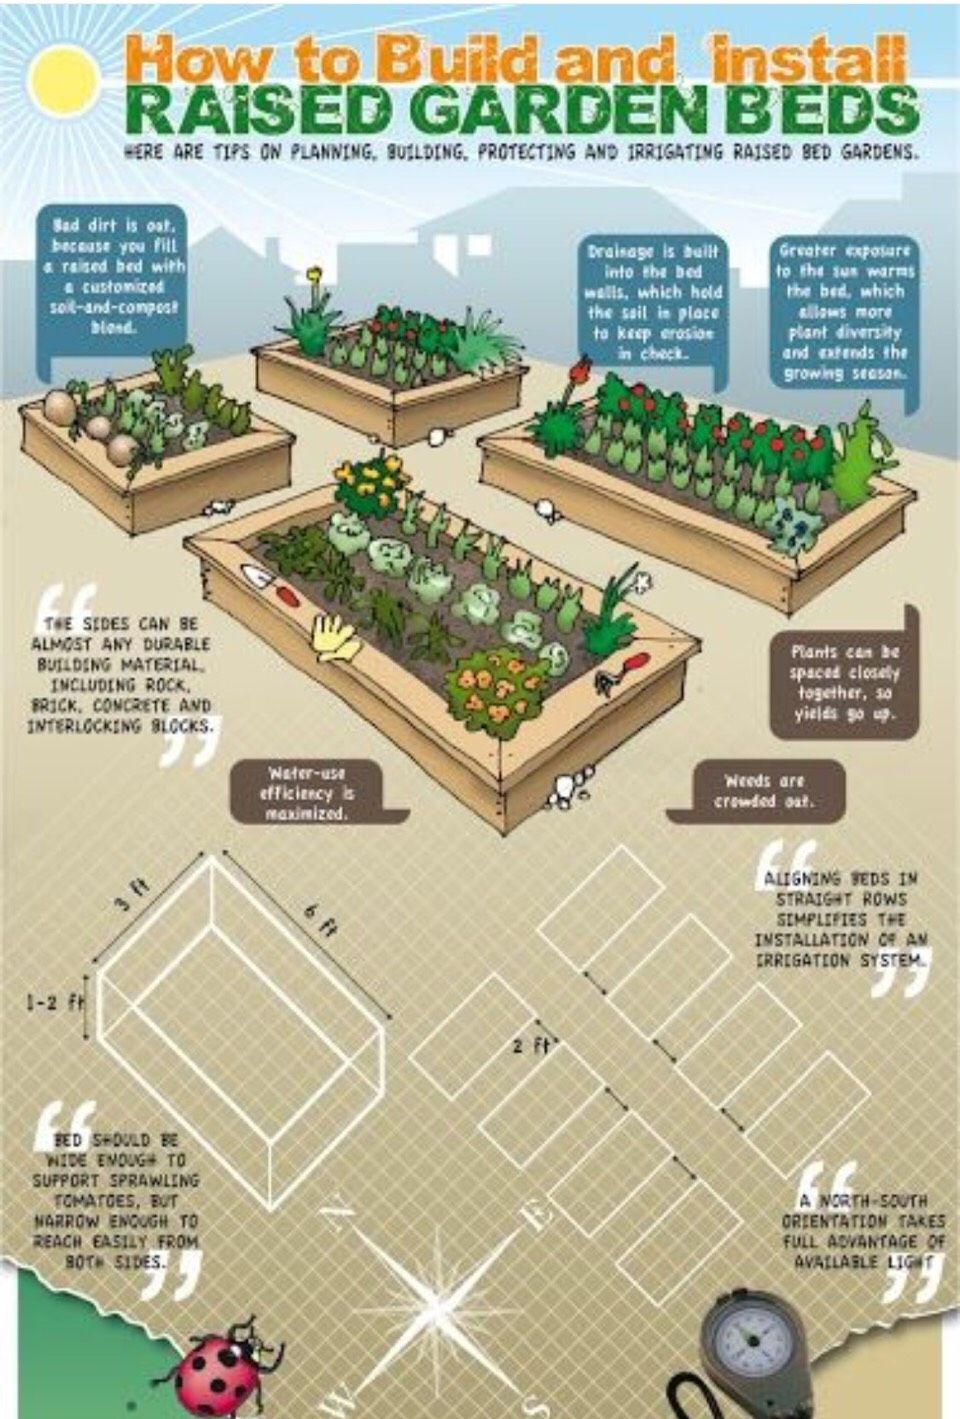 How To Build And Install Raised Garden Beds Tipit